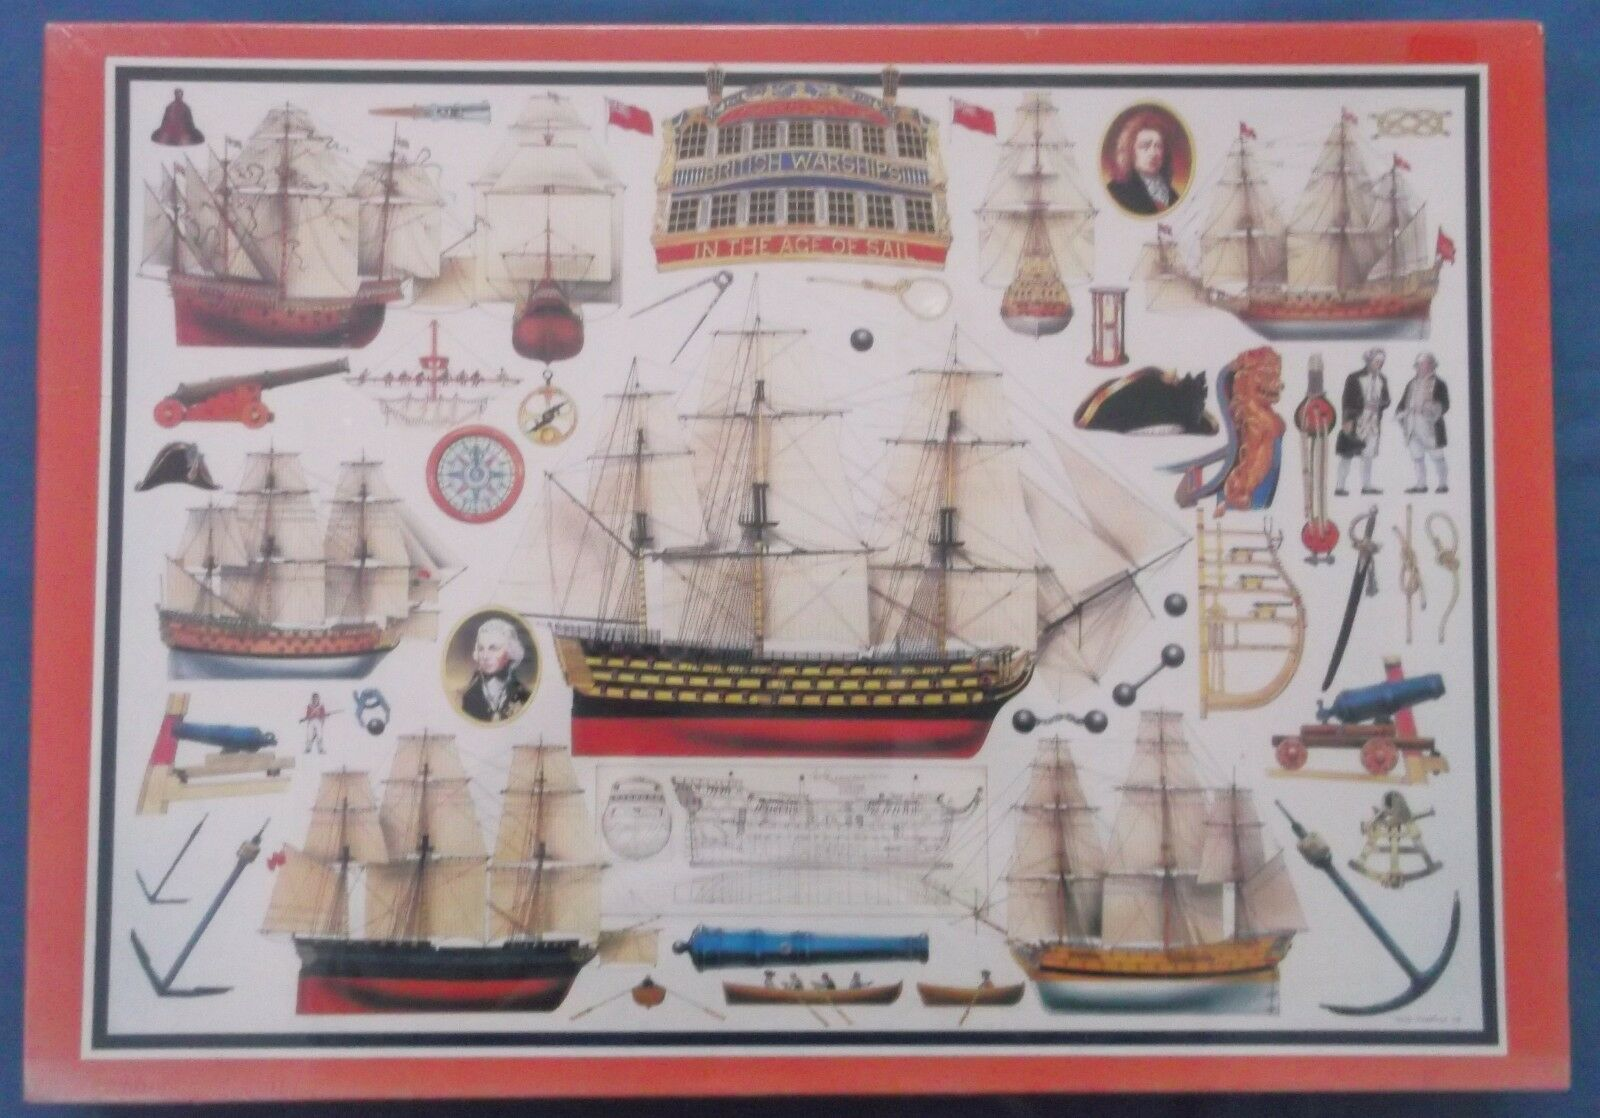 CITADEL BRITISH WARSHIPS AGE OF SAIL 1000 PIECE DELUXE PUZZLE JIGSAW PUZZLE DELUXE MINT SEALED c89be3